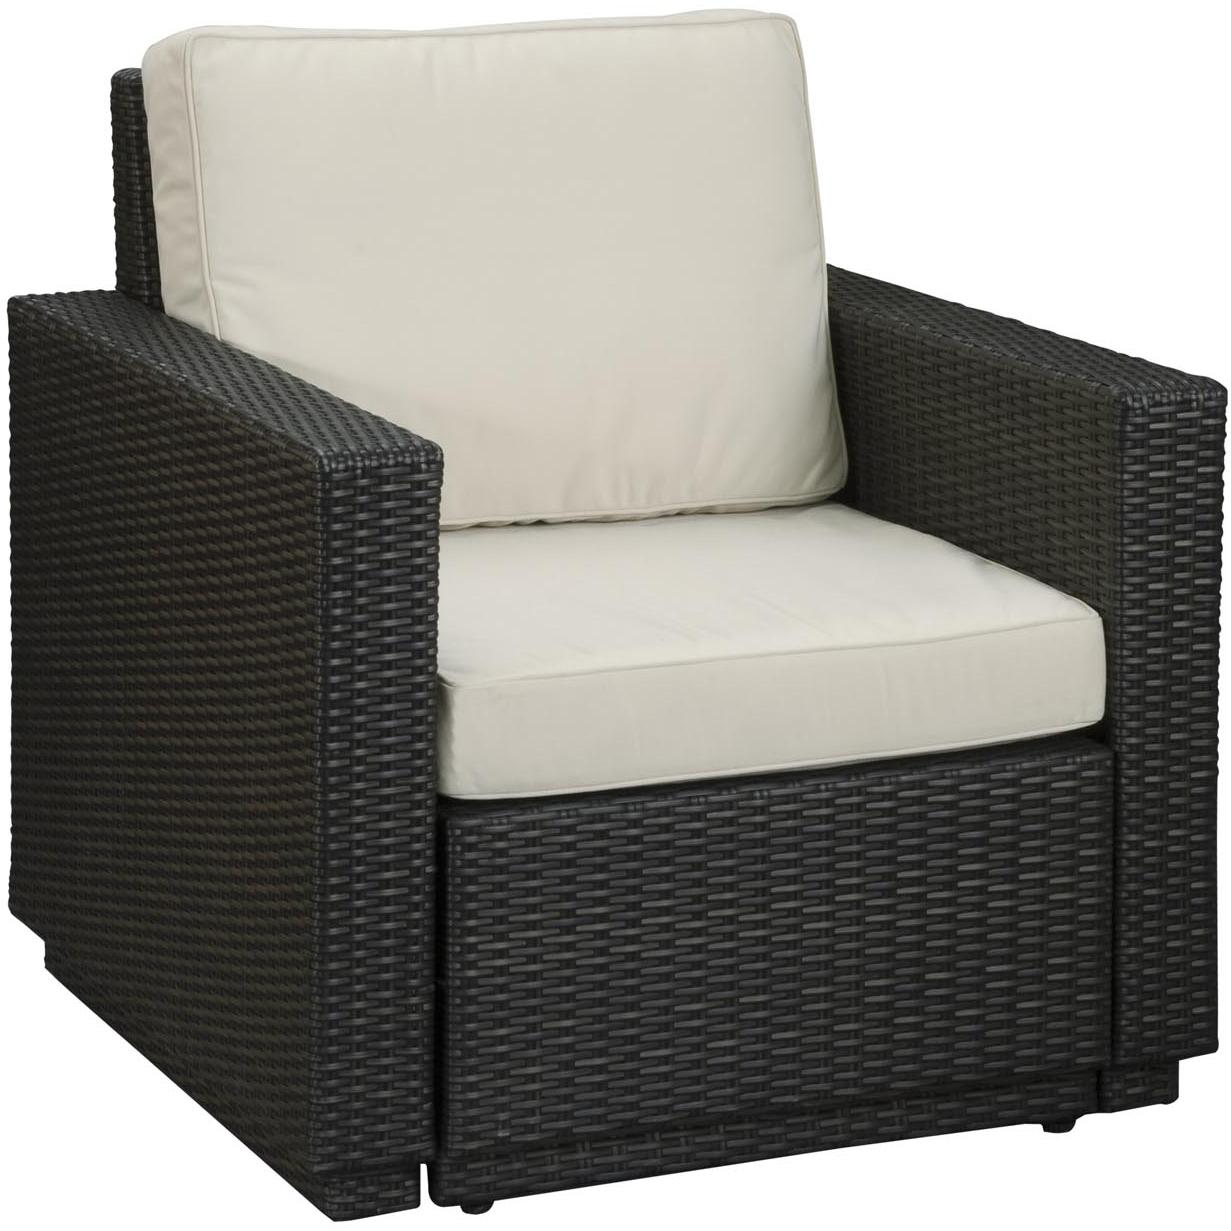 Home Styles Riviera Resin Wicker Outdoor Patio Arm Chair With Cushion - Stone Fabric